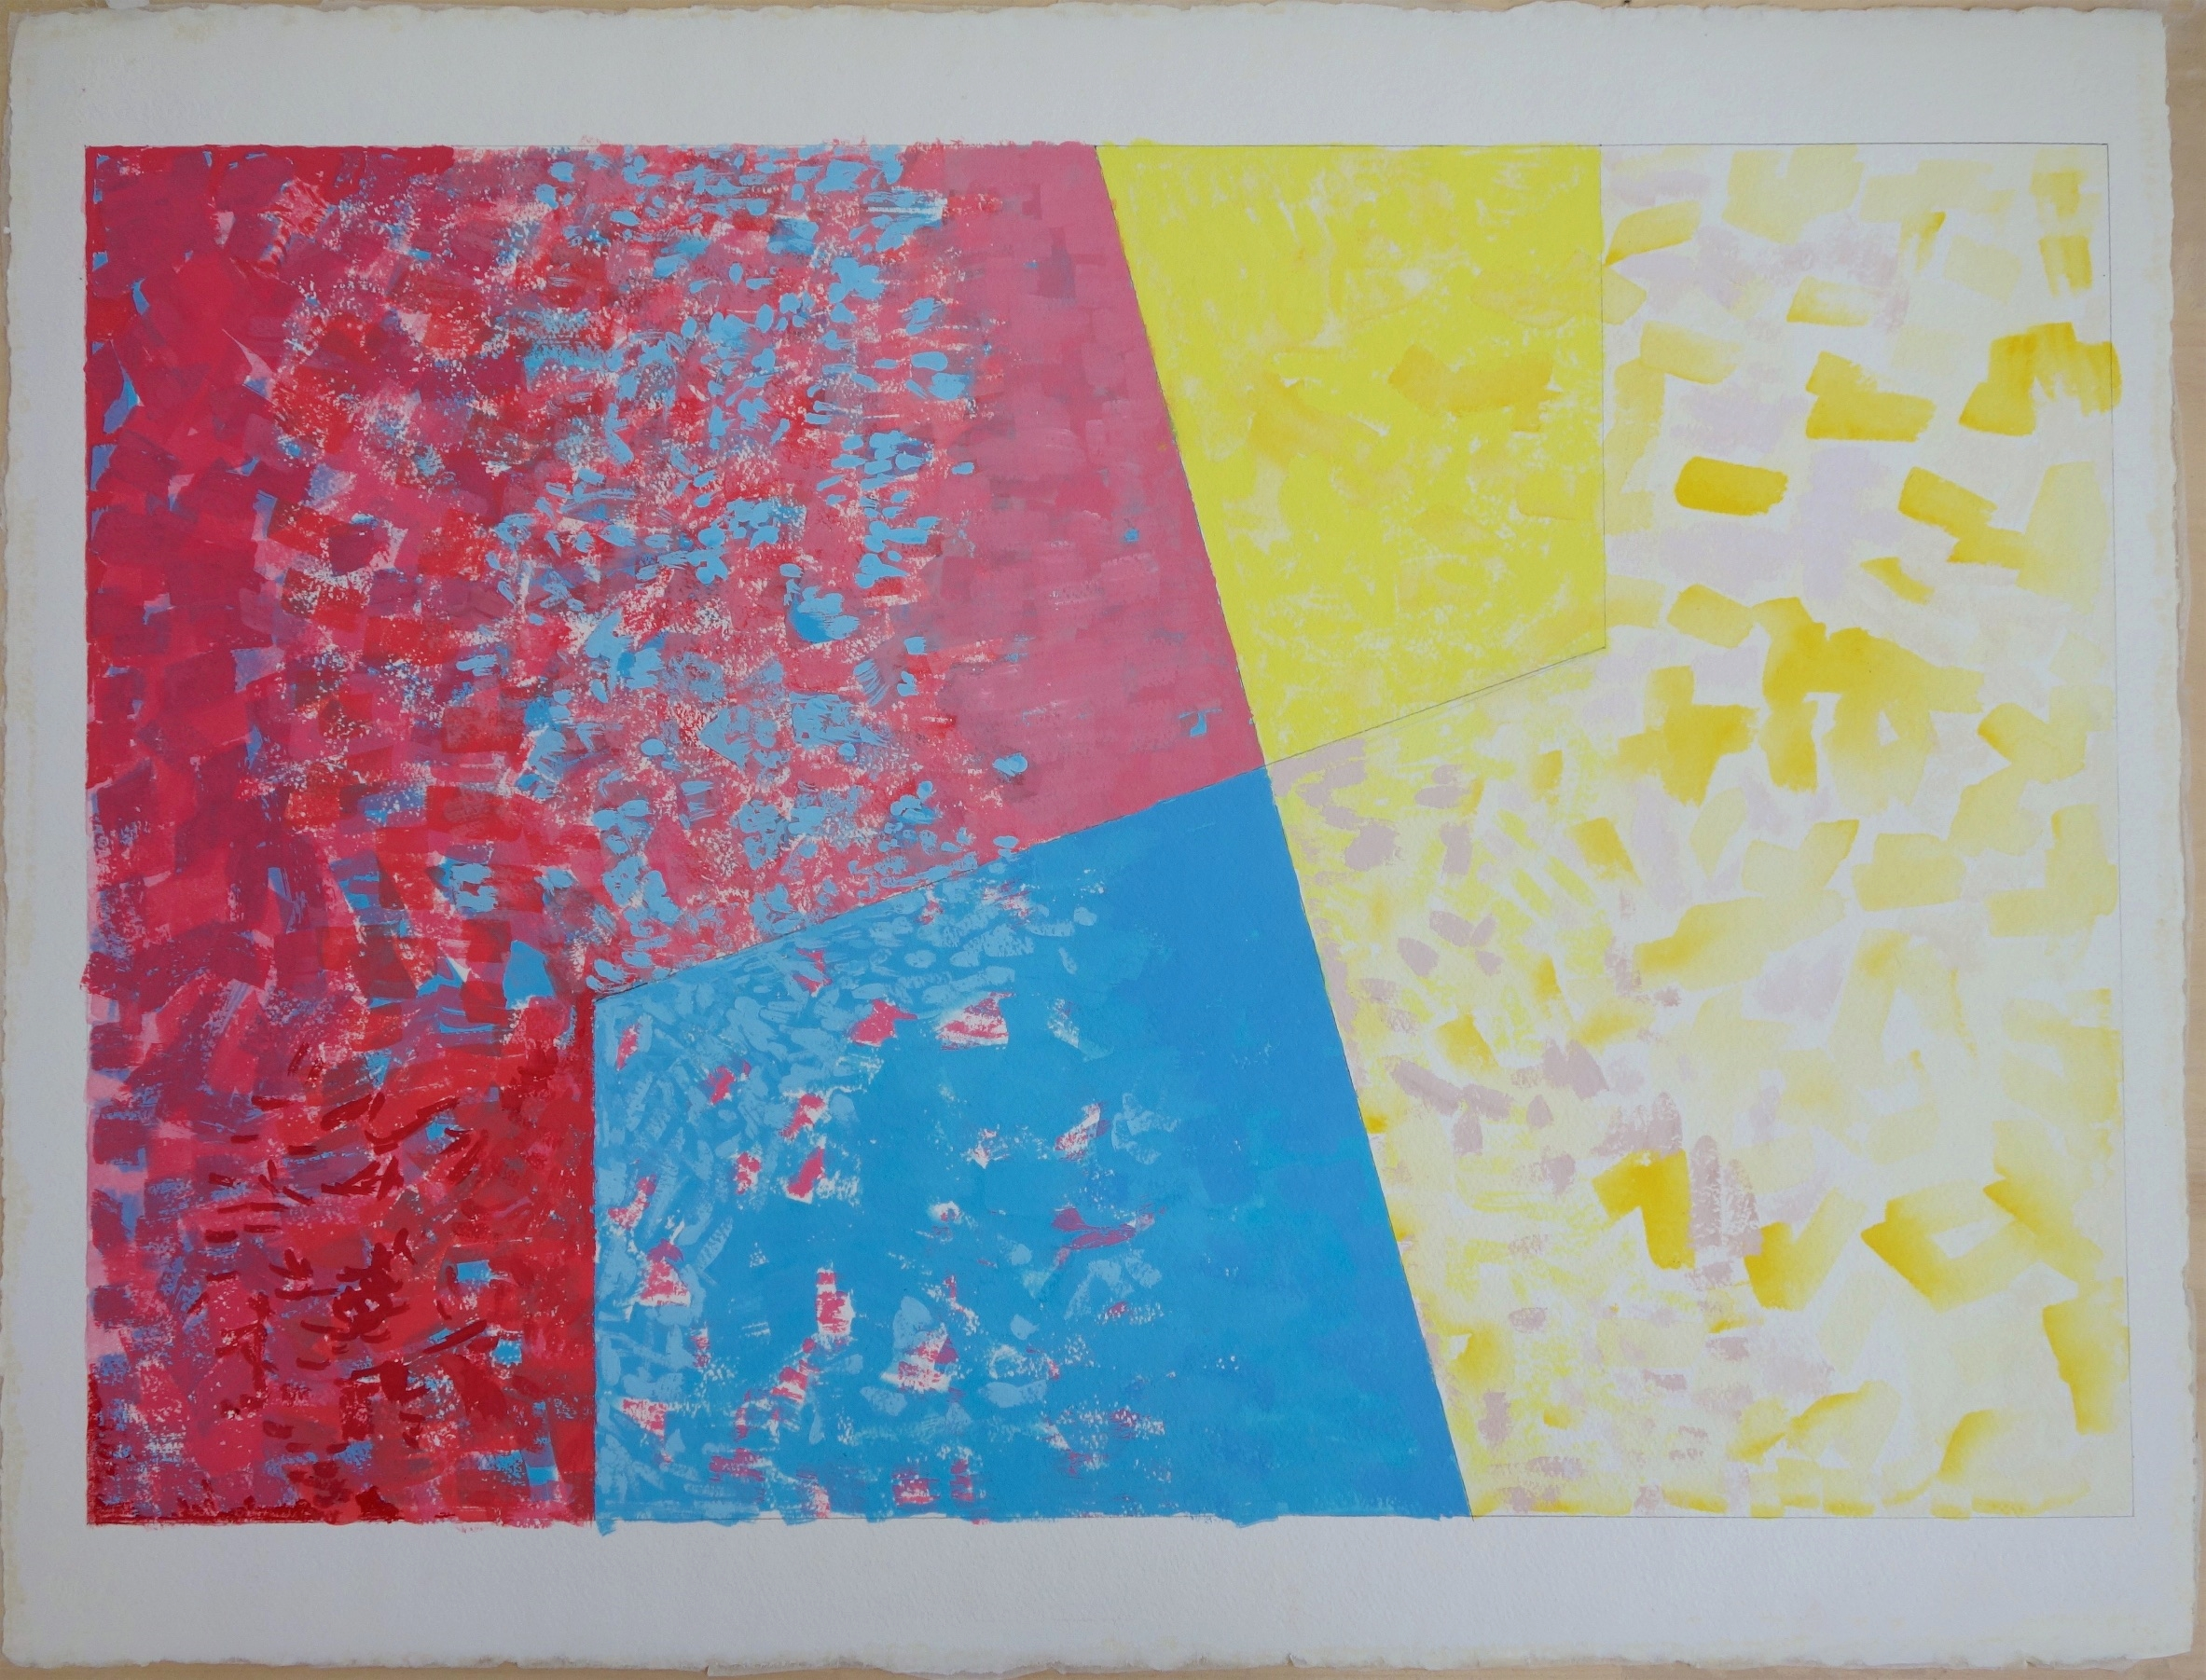 Untitled, (2015) Gouache on Paper. paper 30x22.5; image 28x19 in